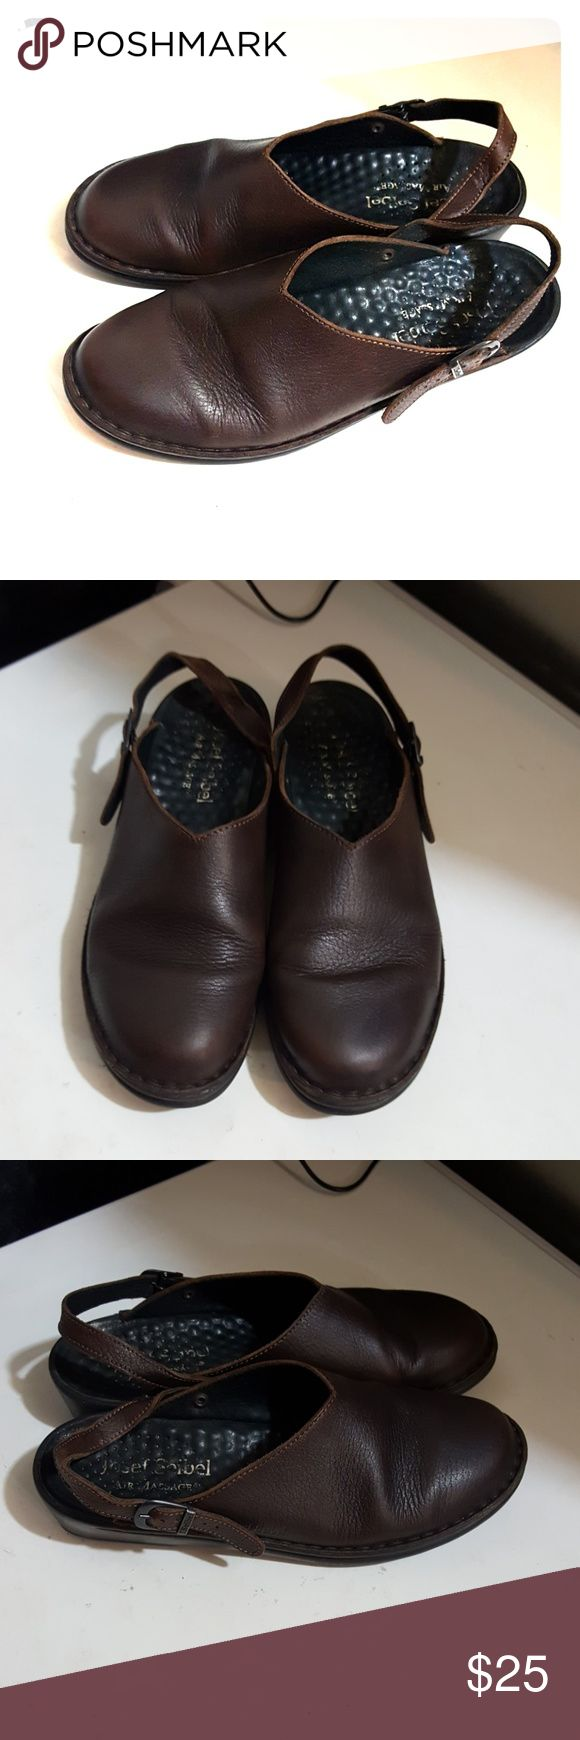 Josef Seibel air massage clogs size 12/42 Josef Seibel women's air massage clogs size 42 brown color they are in excellent condition and they are very comfortable and sexy. I'm selling them at an excellent price so get them today yeah! Josef Seibel Shoes Mules & Clogs